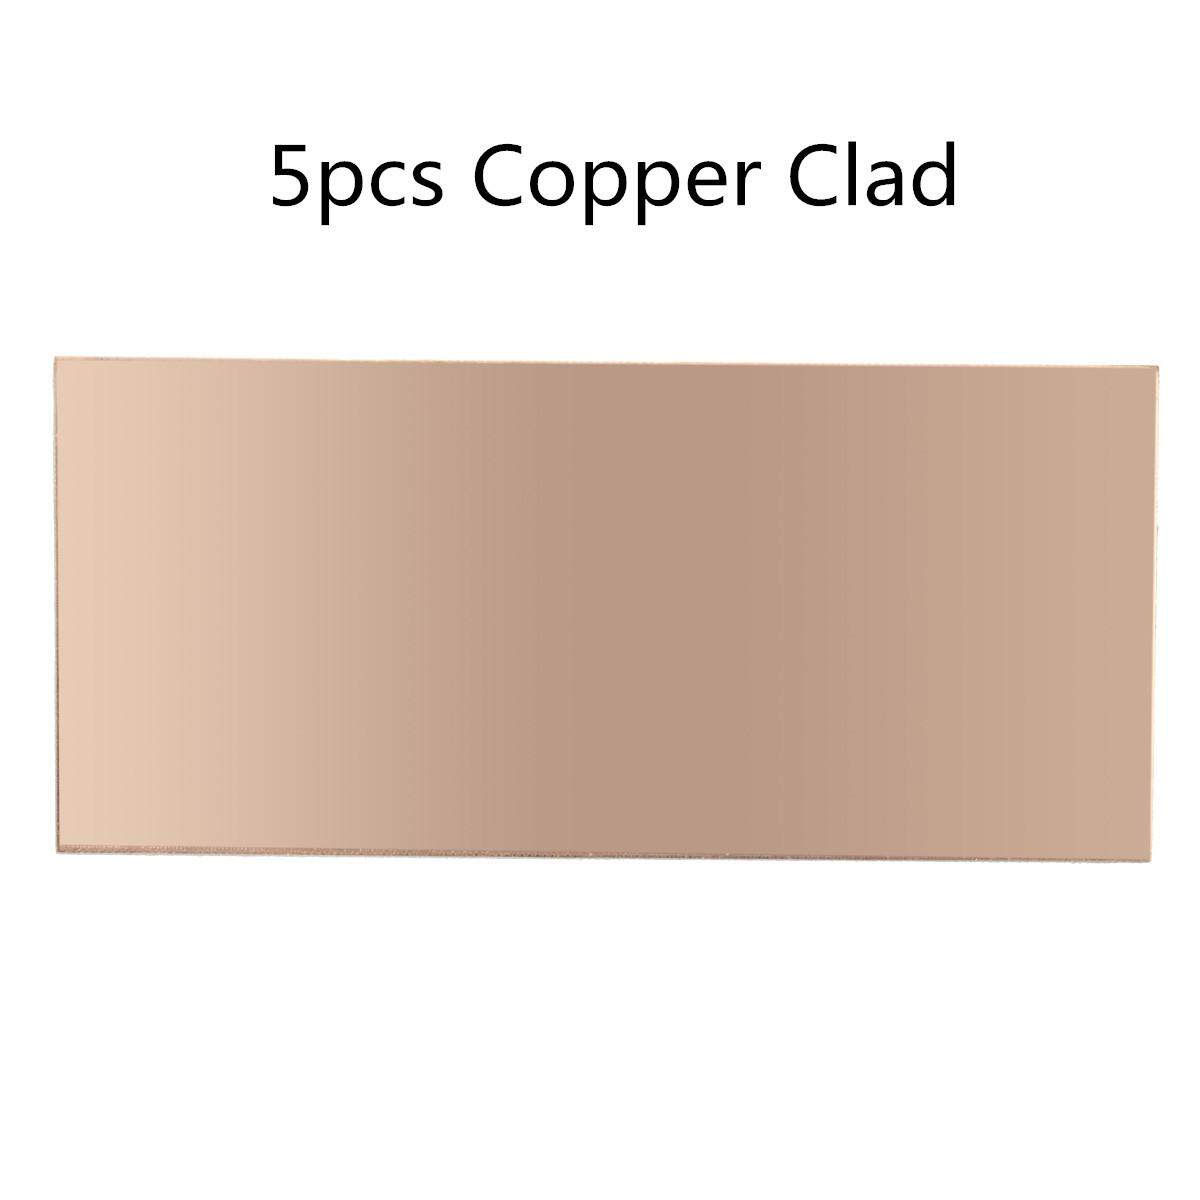 Sell 100x220x1 5mm Fr4 Cheapest Best Quality My Store Or Singlesided Copper Clad Epoxy Sheet For Printed Circuit Board Double Plate Laminate Pcb Boardmyr41 Myr 41